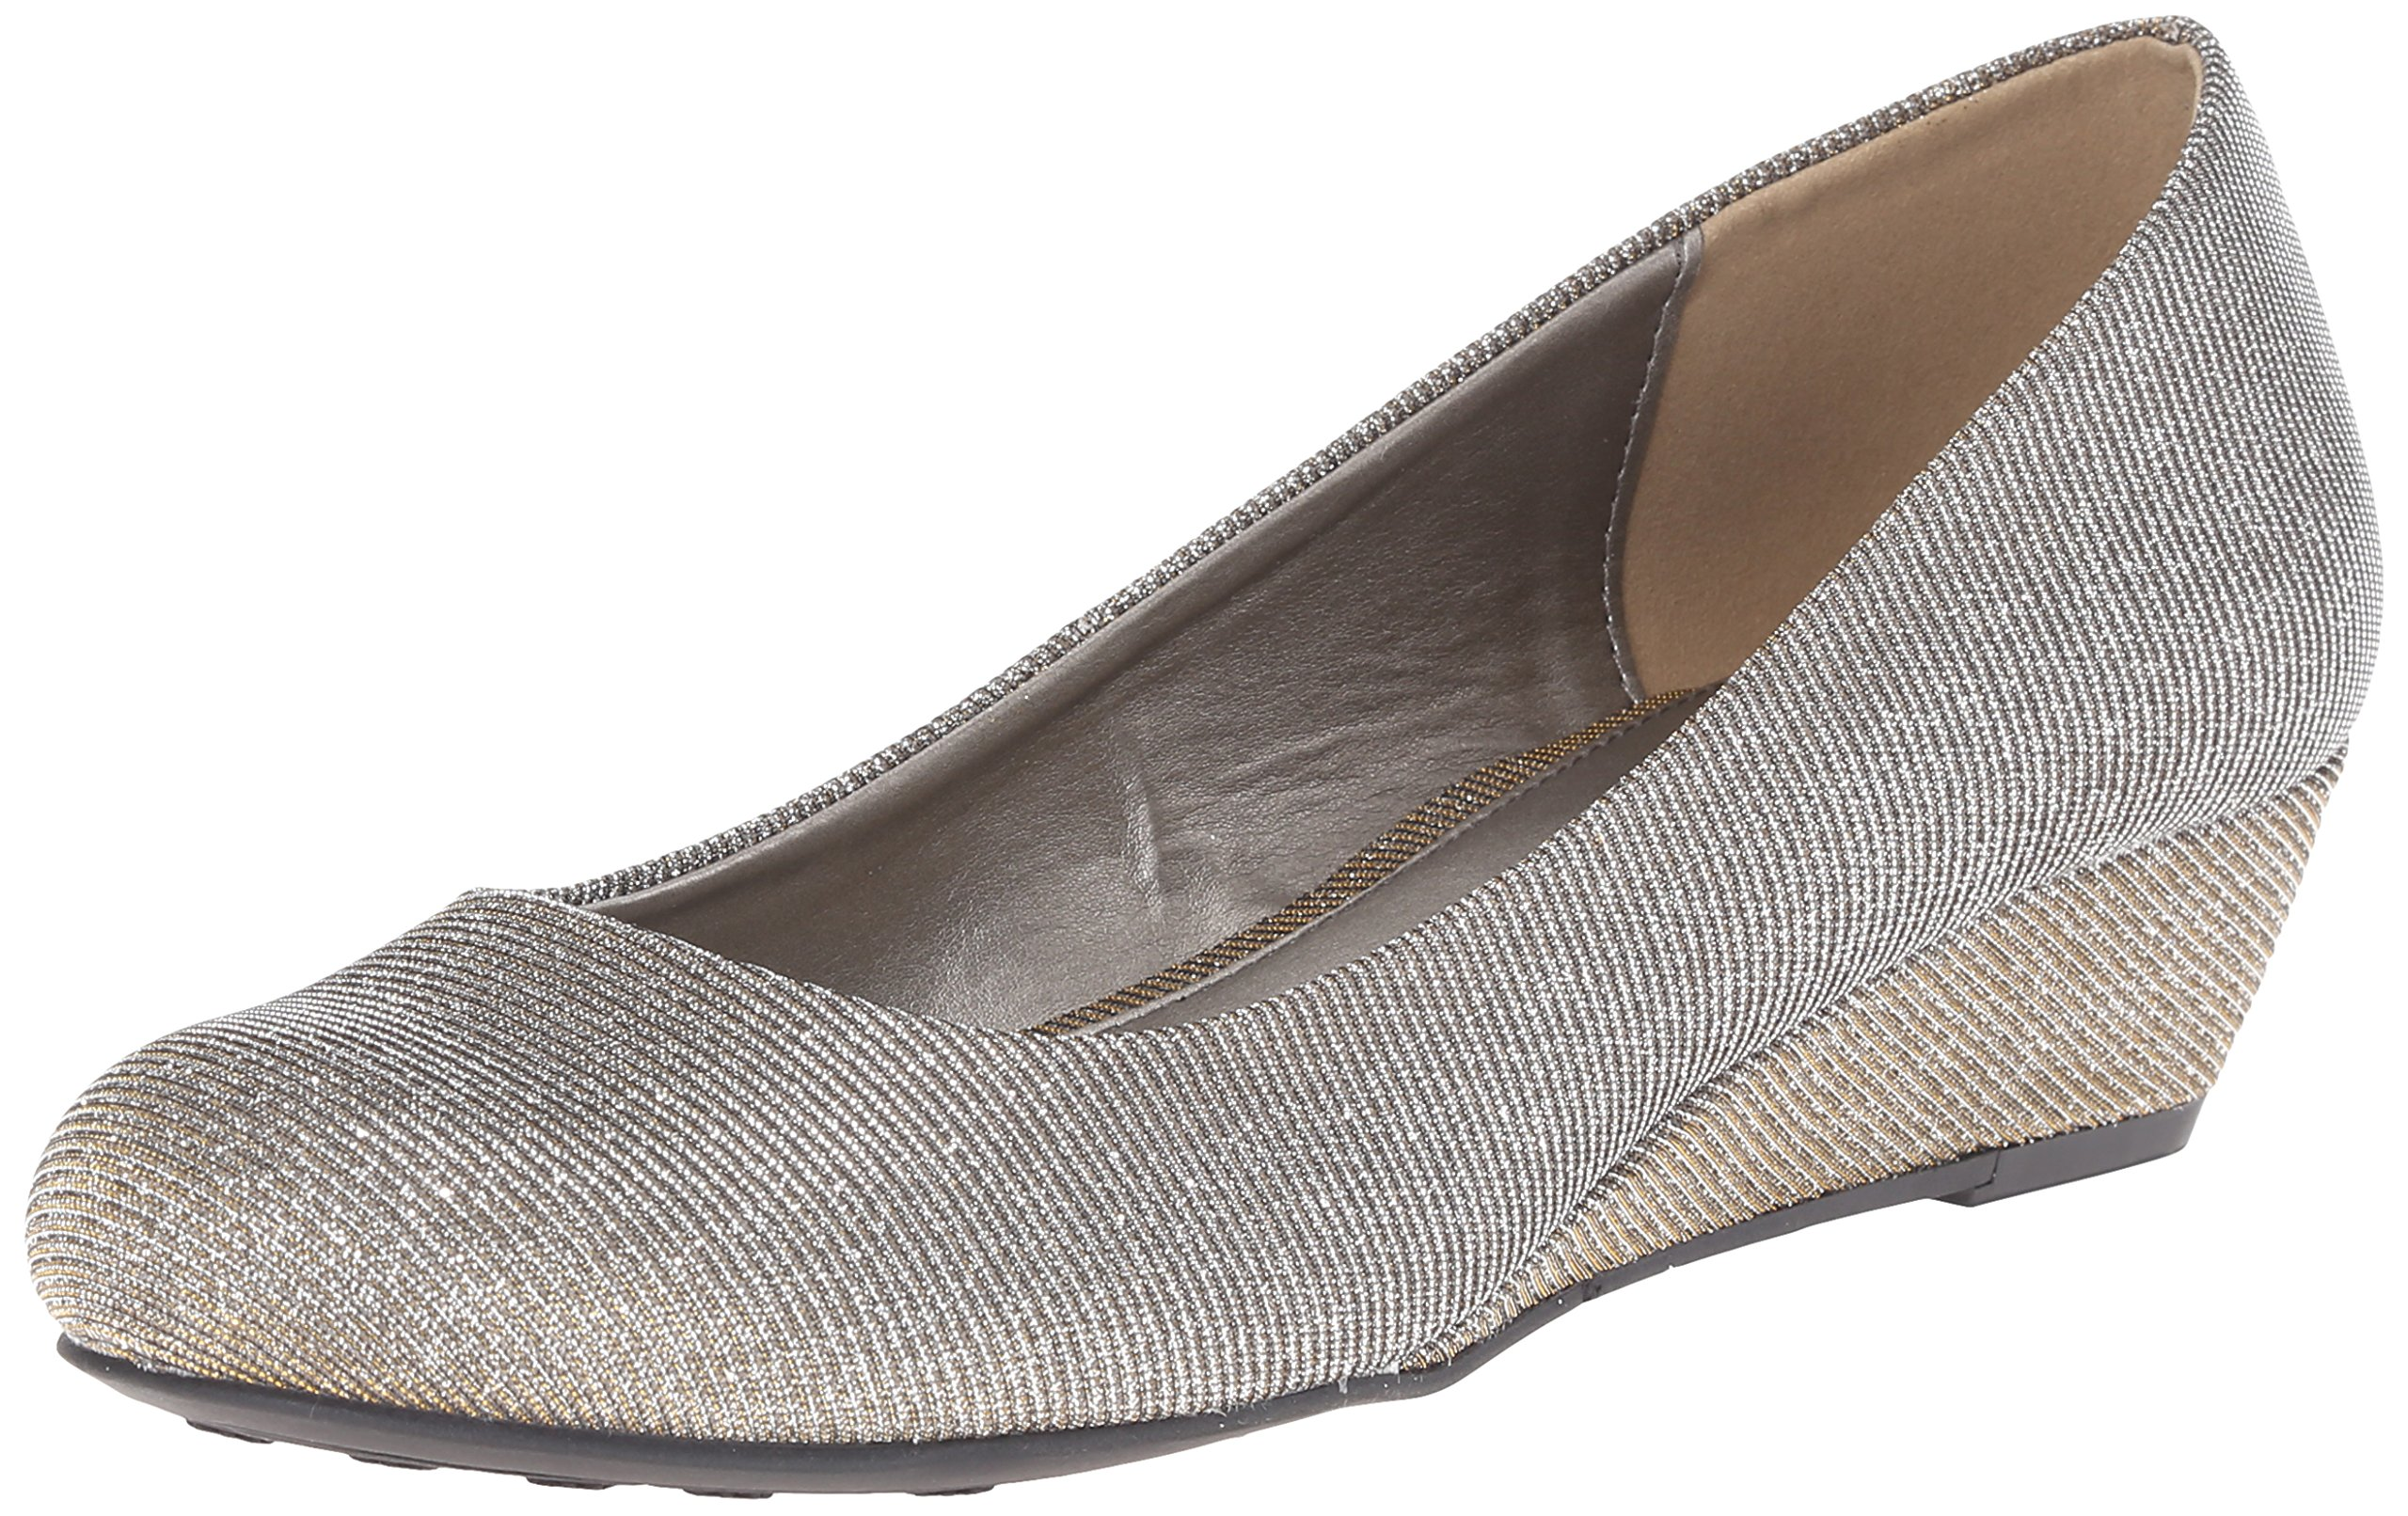 CL by Chinese Laundry Women's Marcie Wedge Pump, Champagne Twilight, 8 M US